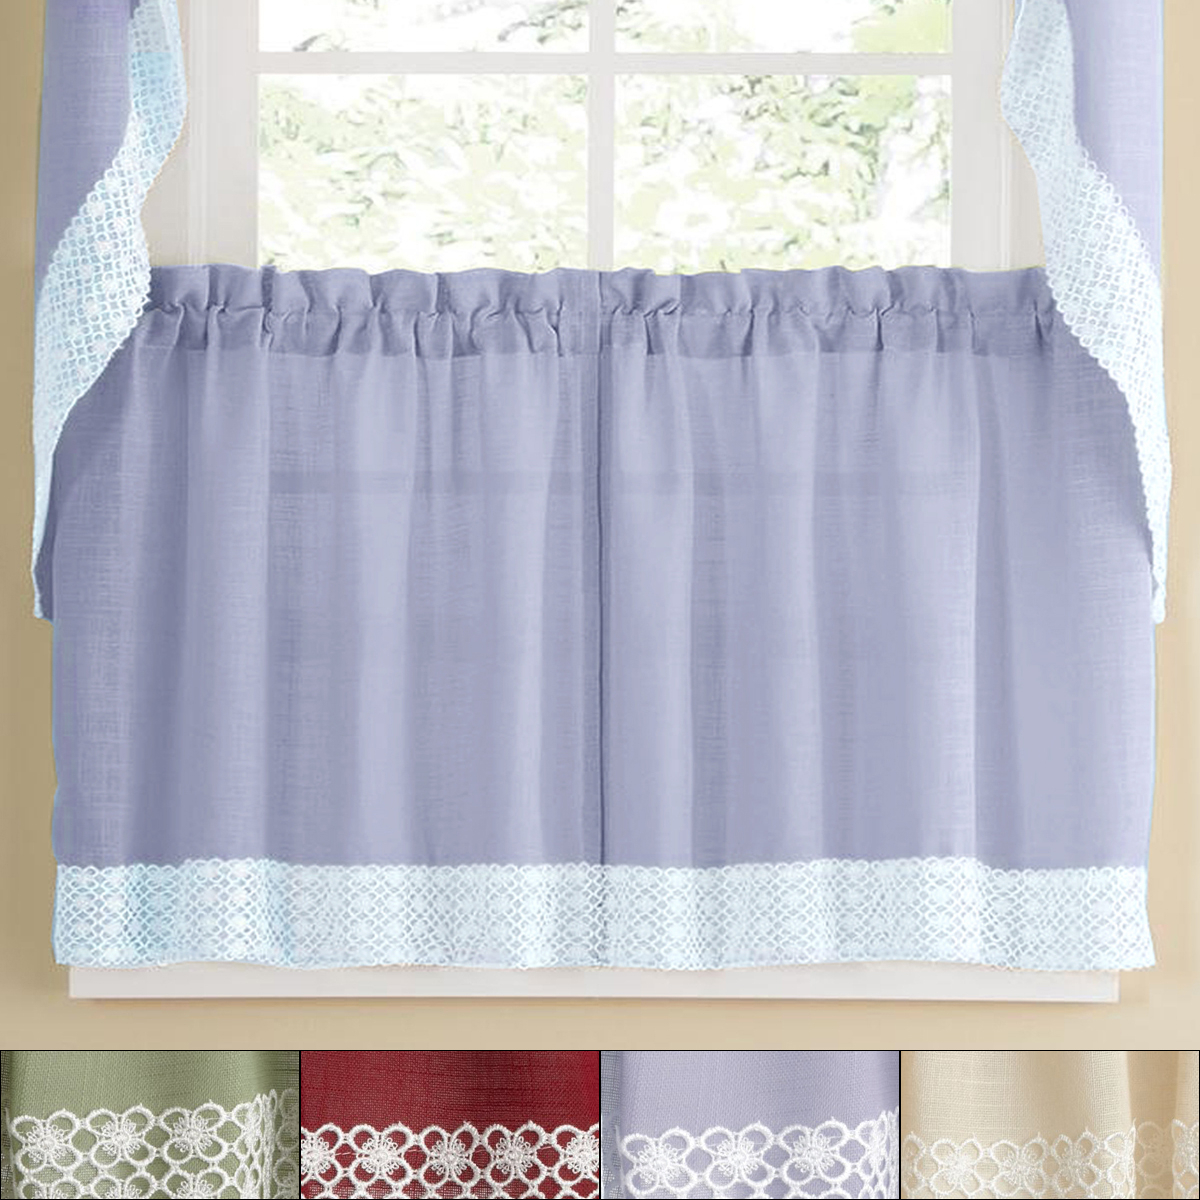 Details About Salem Kitchen Window Curtain W/ Lace Trim – 24 X 60 Tier Pair Regarding Country Style Curtain Parts With White Daisy Lace Accent (View 6 of 20)